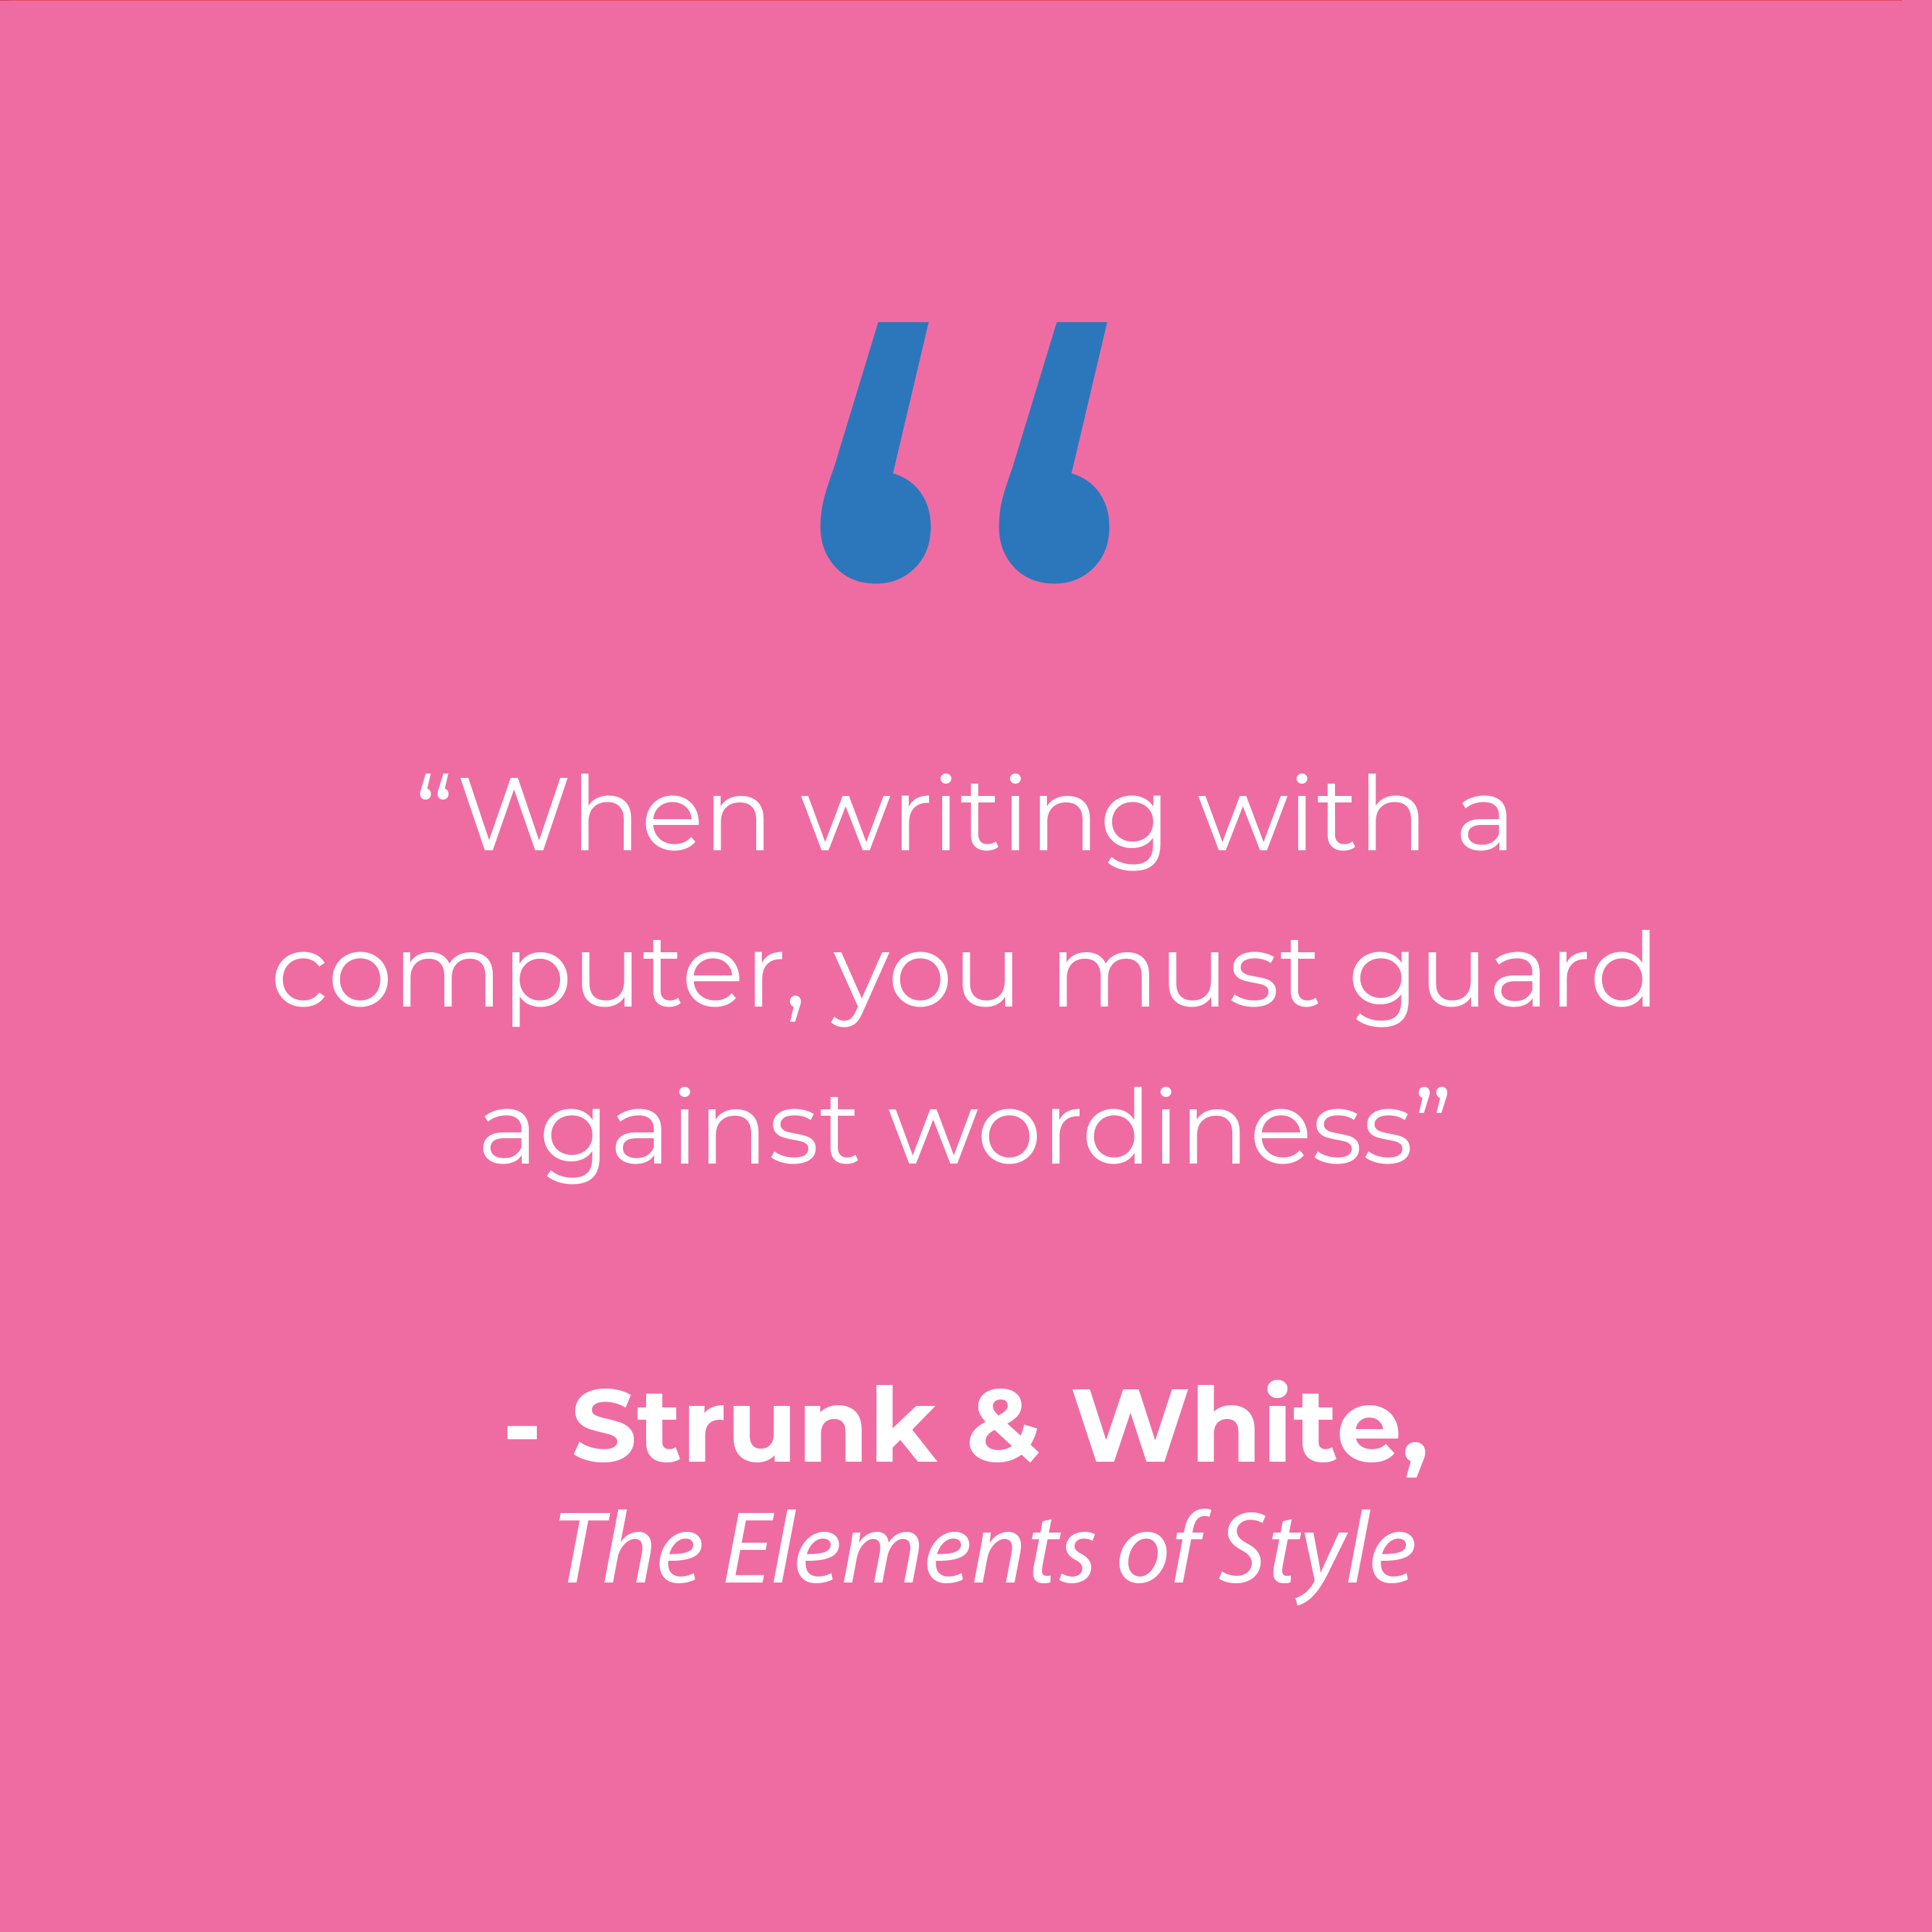 When writing with a computer you must guard against wordiness.